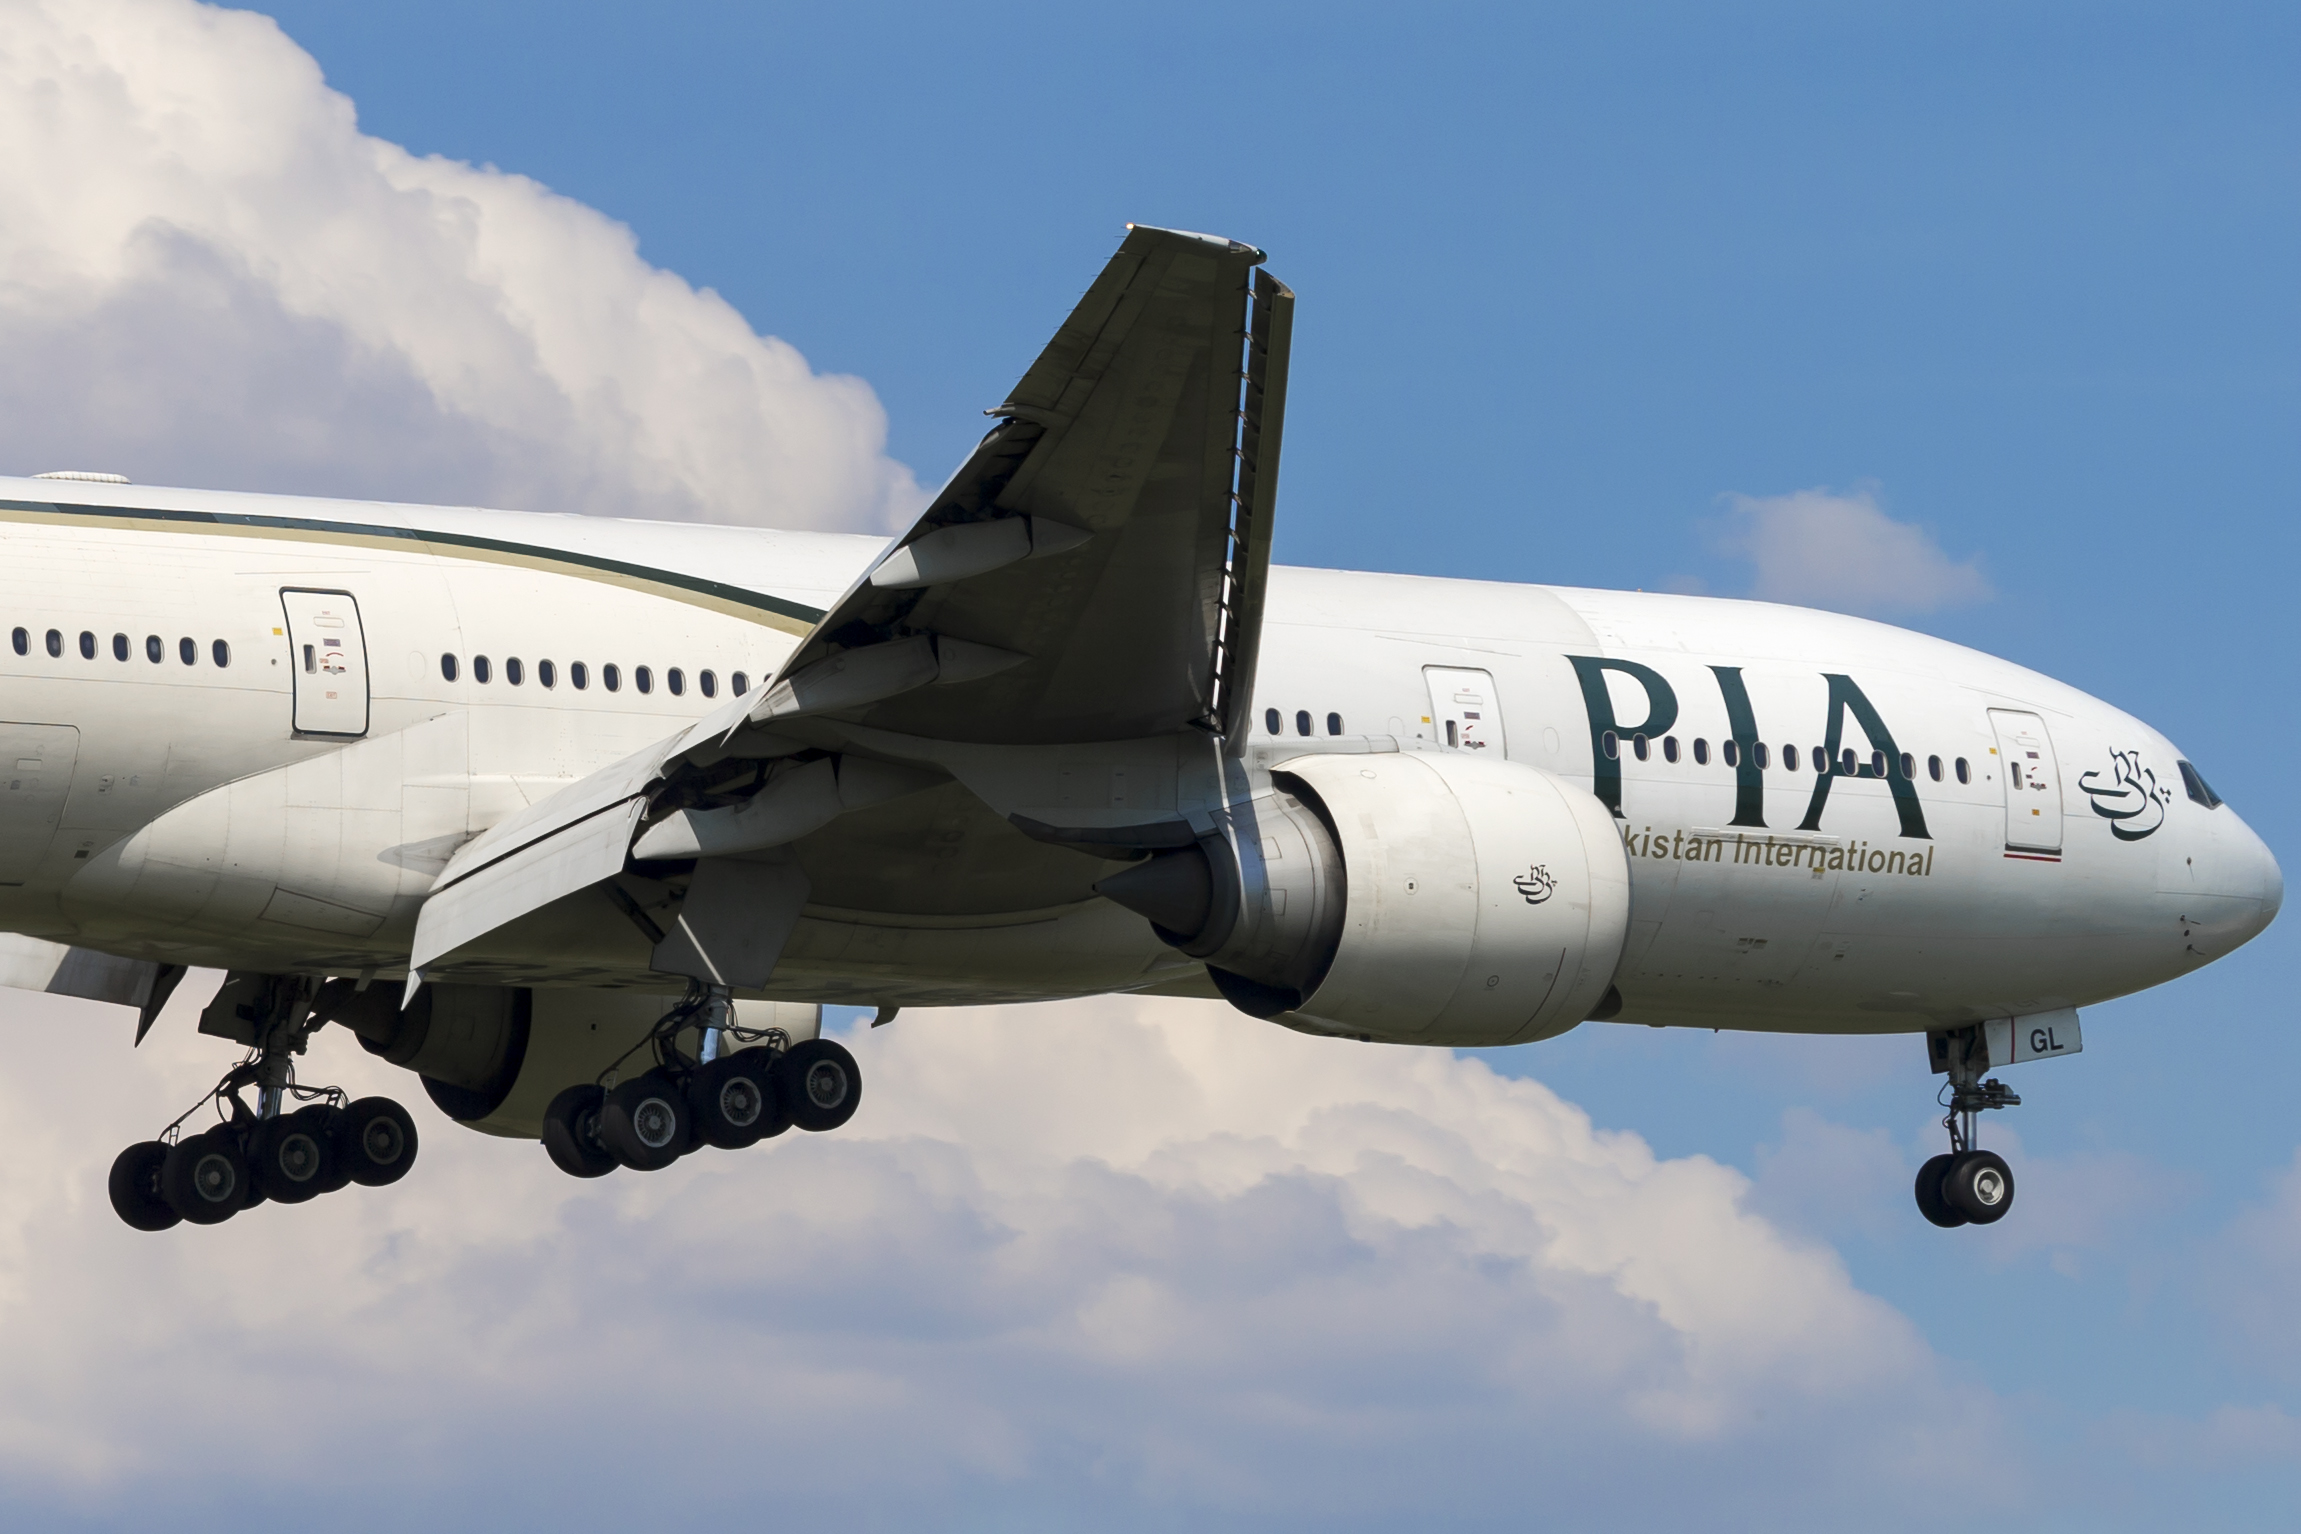 En Boeing 777-200ER fra Pakistan International Airlines (PIA). Foto: © Thorbjørn Brunander Sund, Danish Aviation Photo